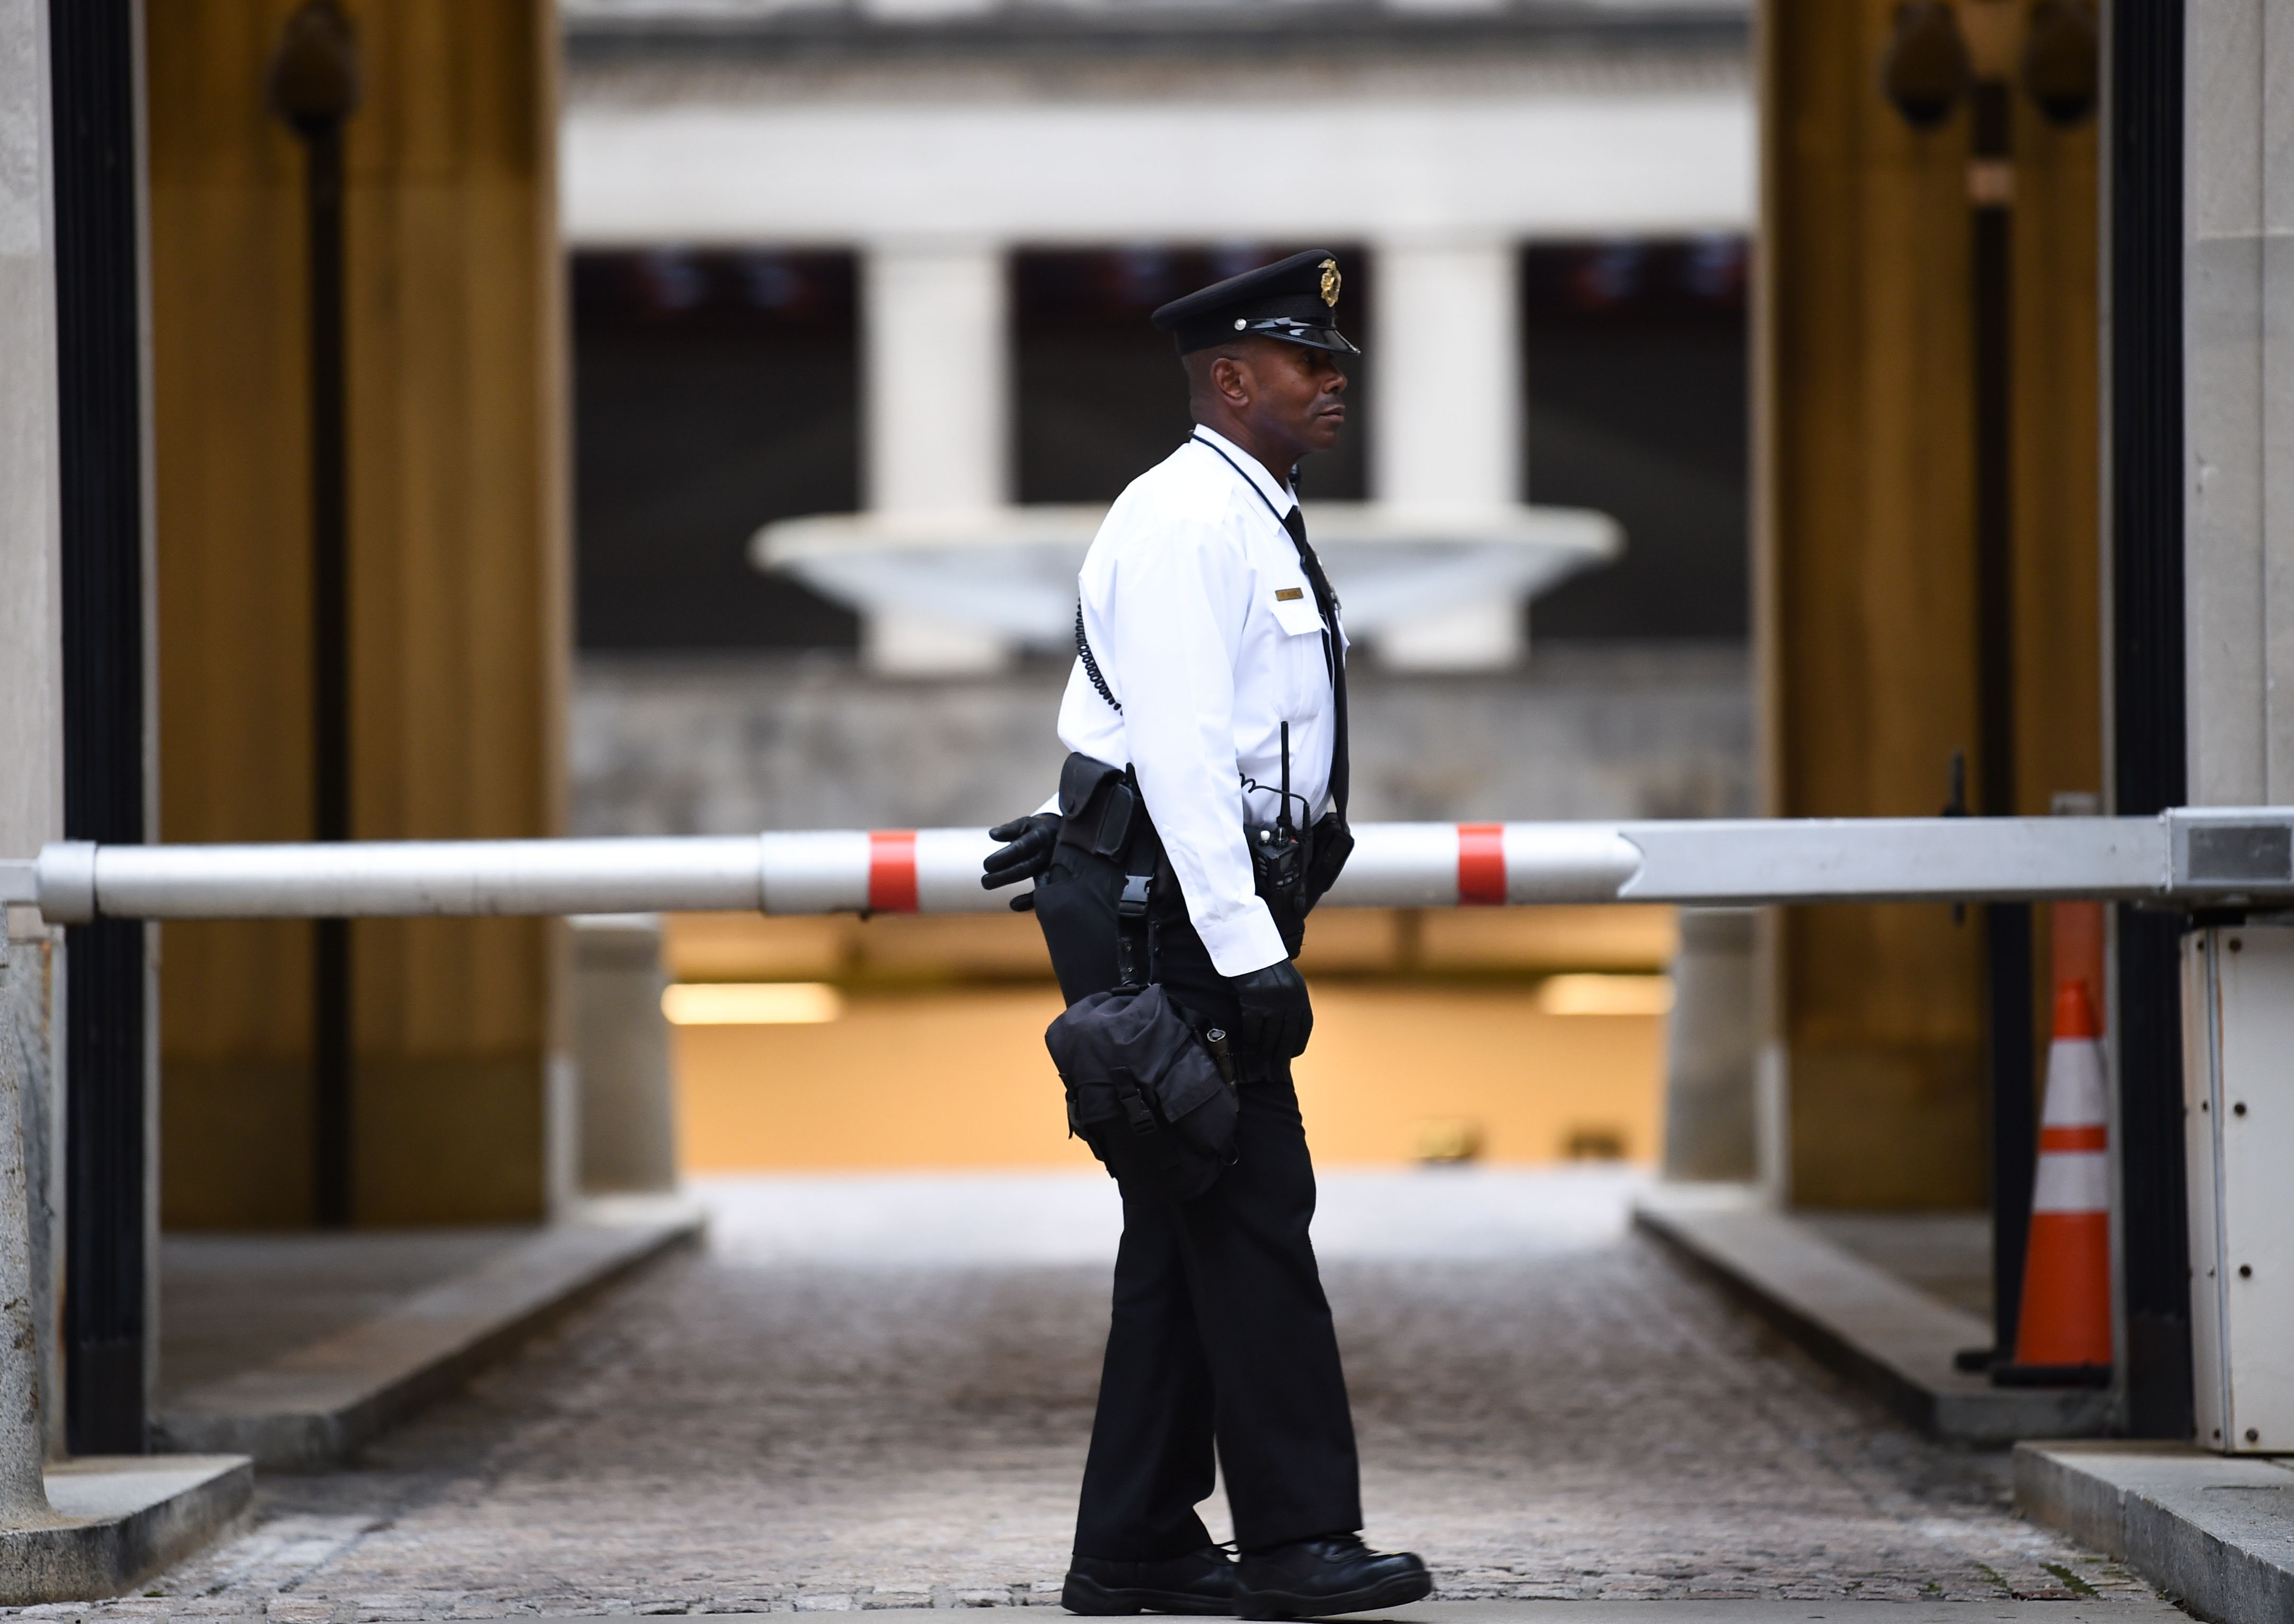 A police officer mans a gate outside the Department of Justice building in Washington, DC on November 7, 2018. (BRENDAN SMIALOWSKI/AFP/Getty Images)